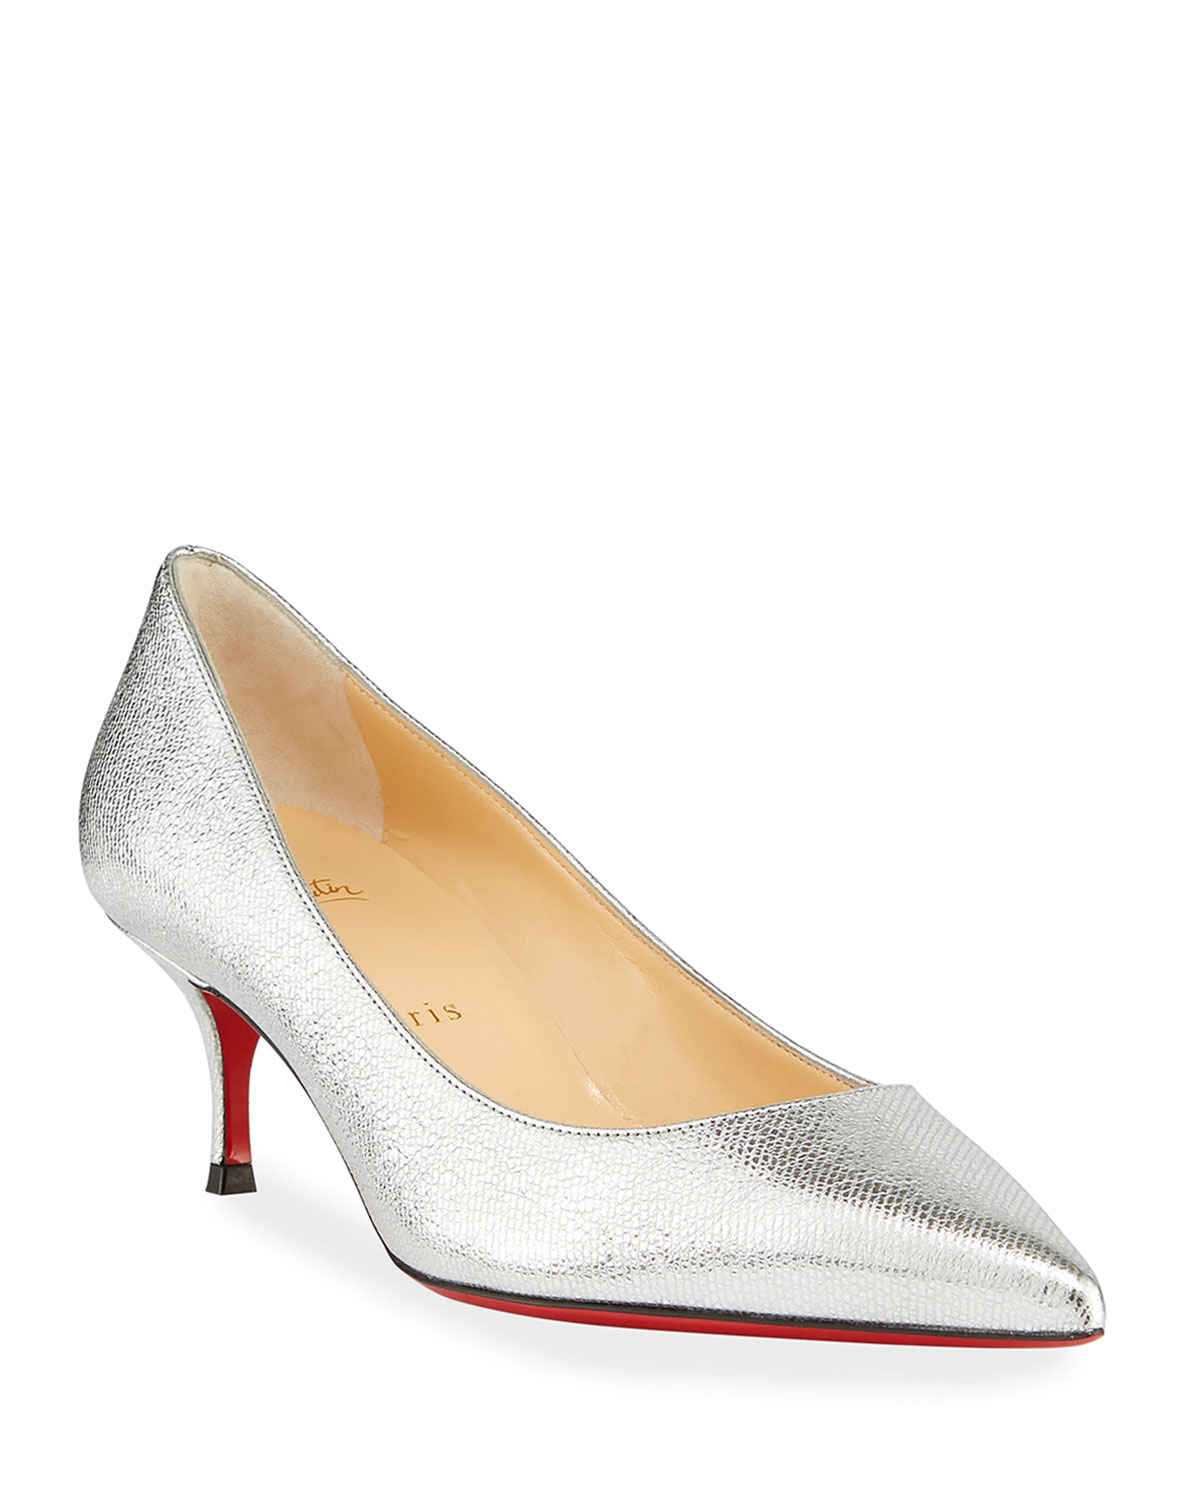 Kate Shiny Leather Red Sole Pumps